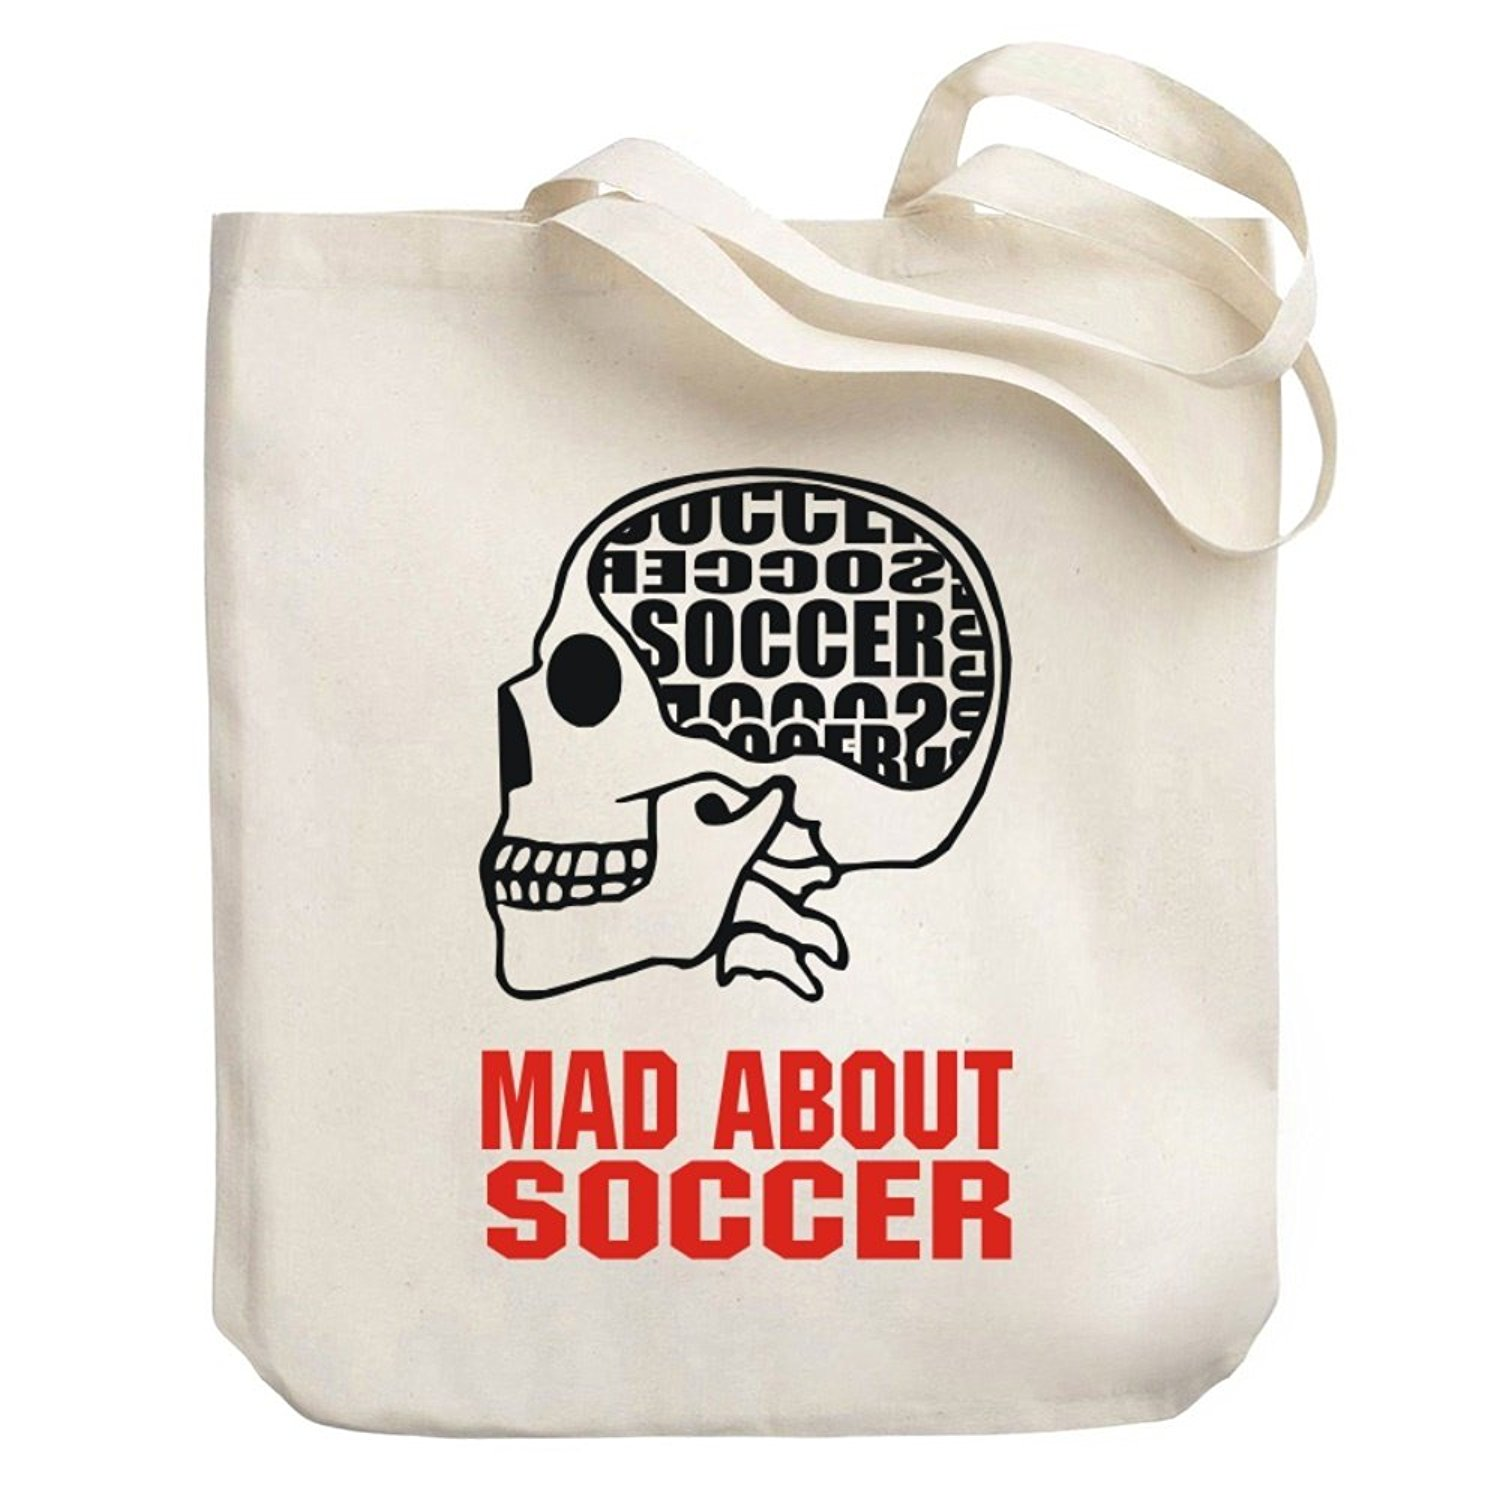 Teeburon MAD ABOUT Soccer SKULL Canvas Tote Bag